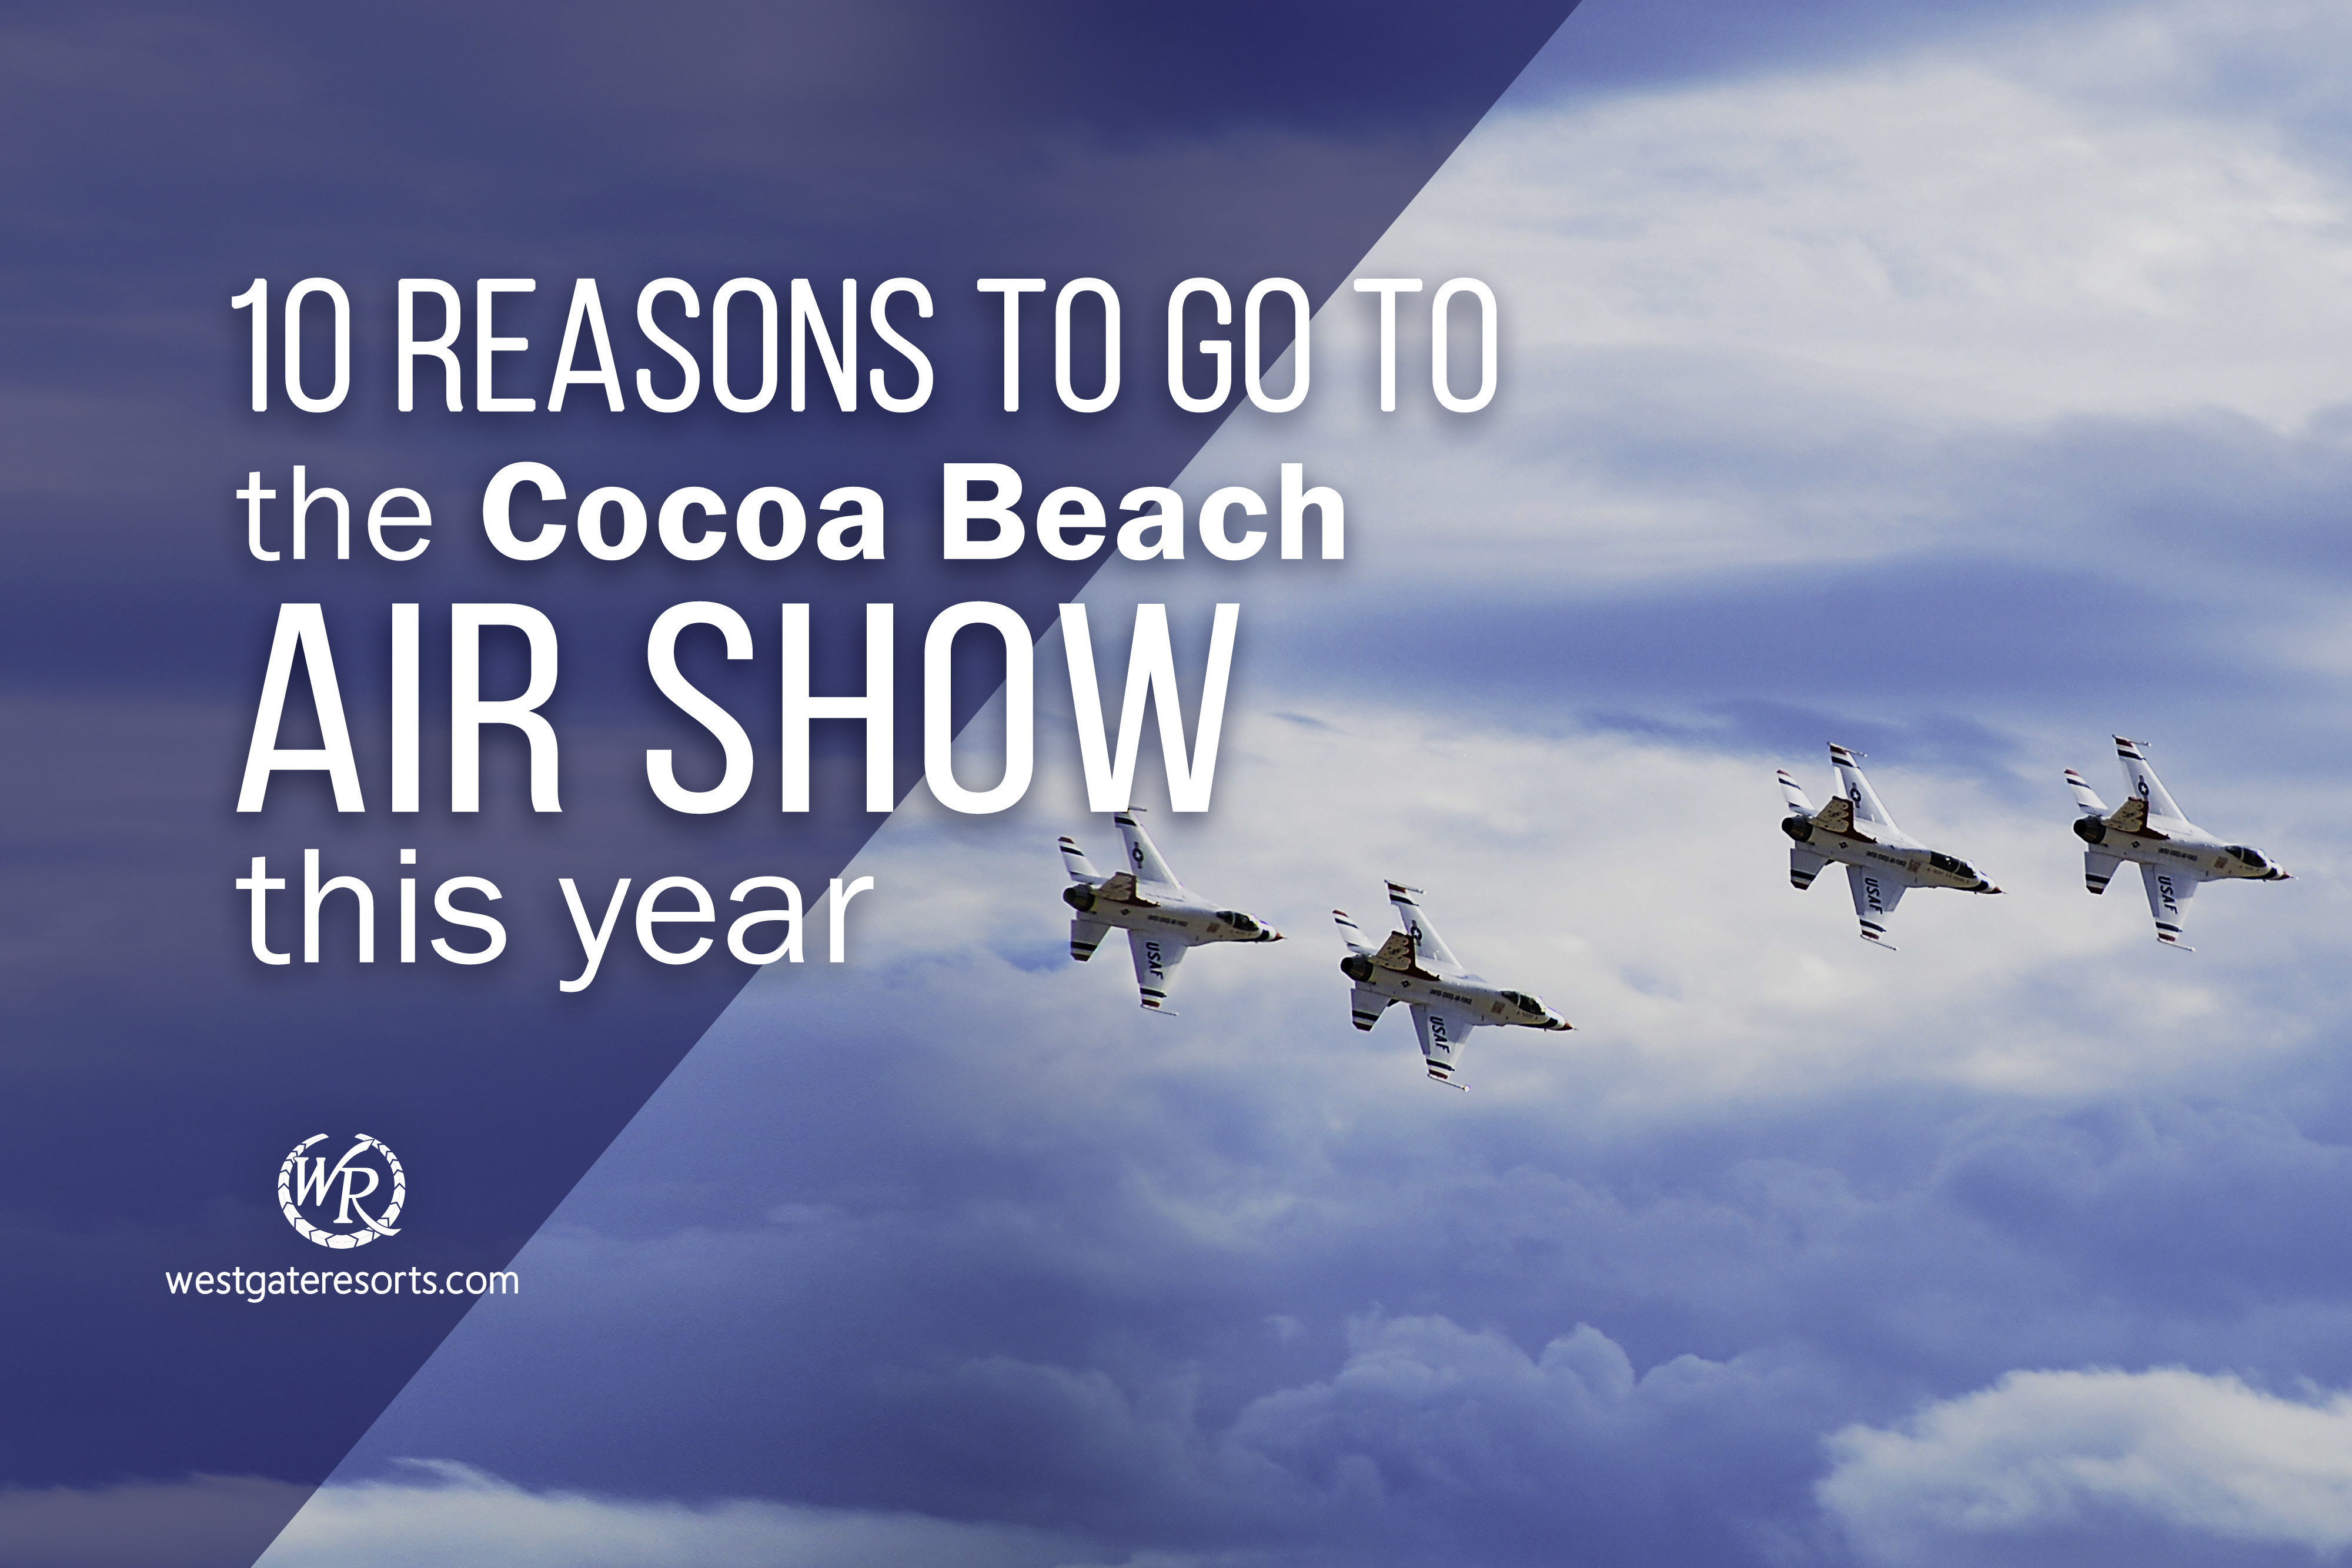 10 Reasons to Go to the Cocoa Beach Airshow this Year to See the Best Lift Offs!